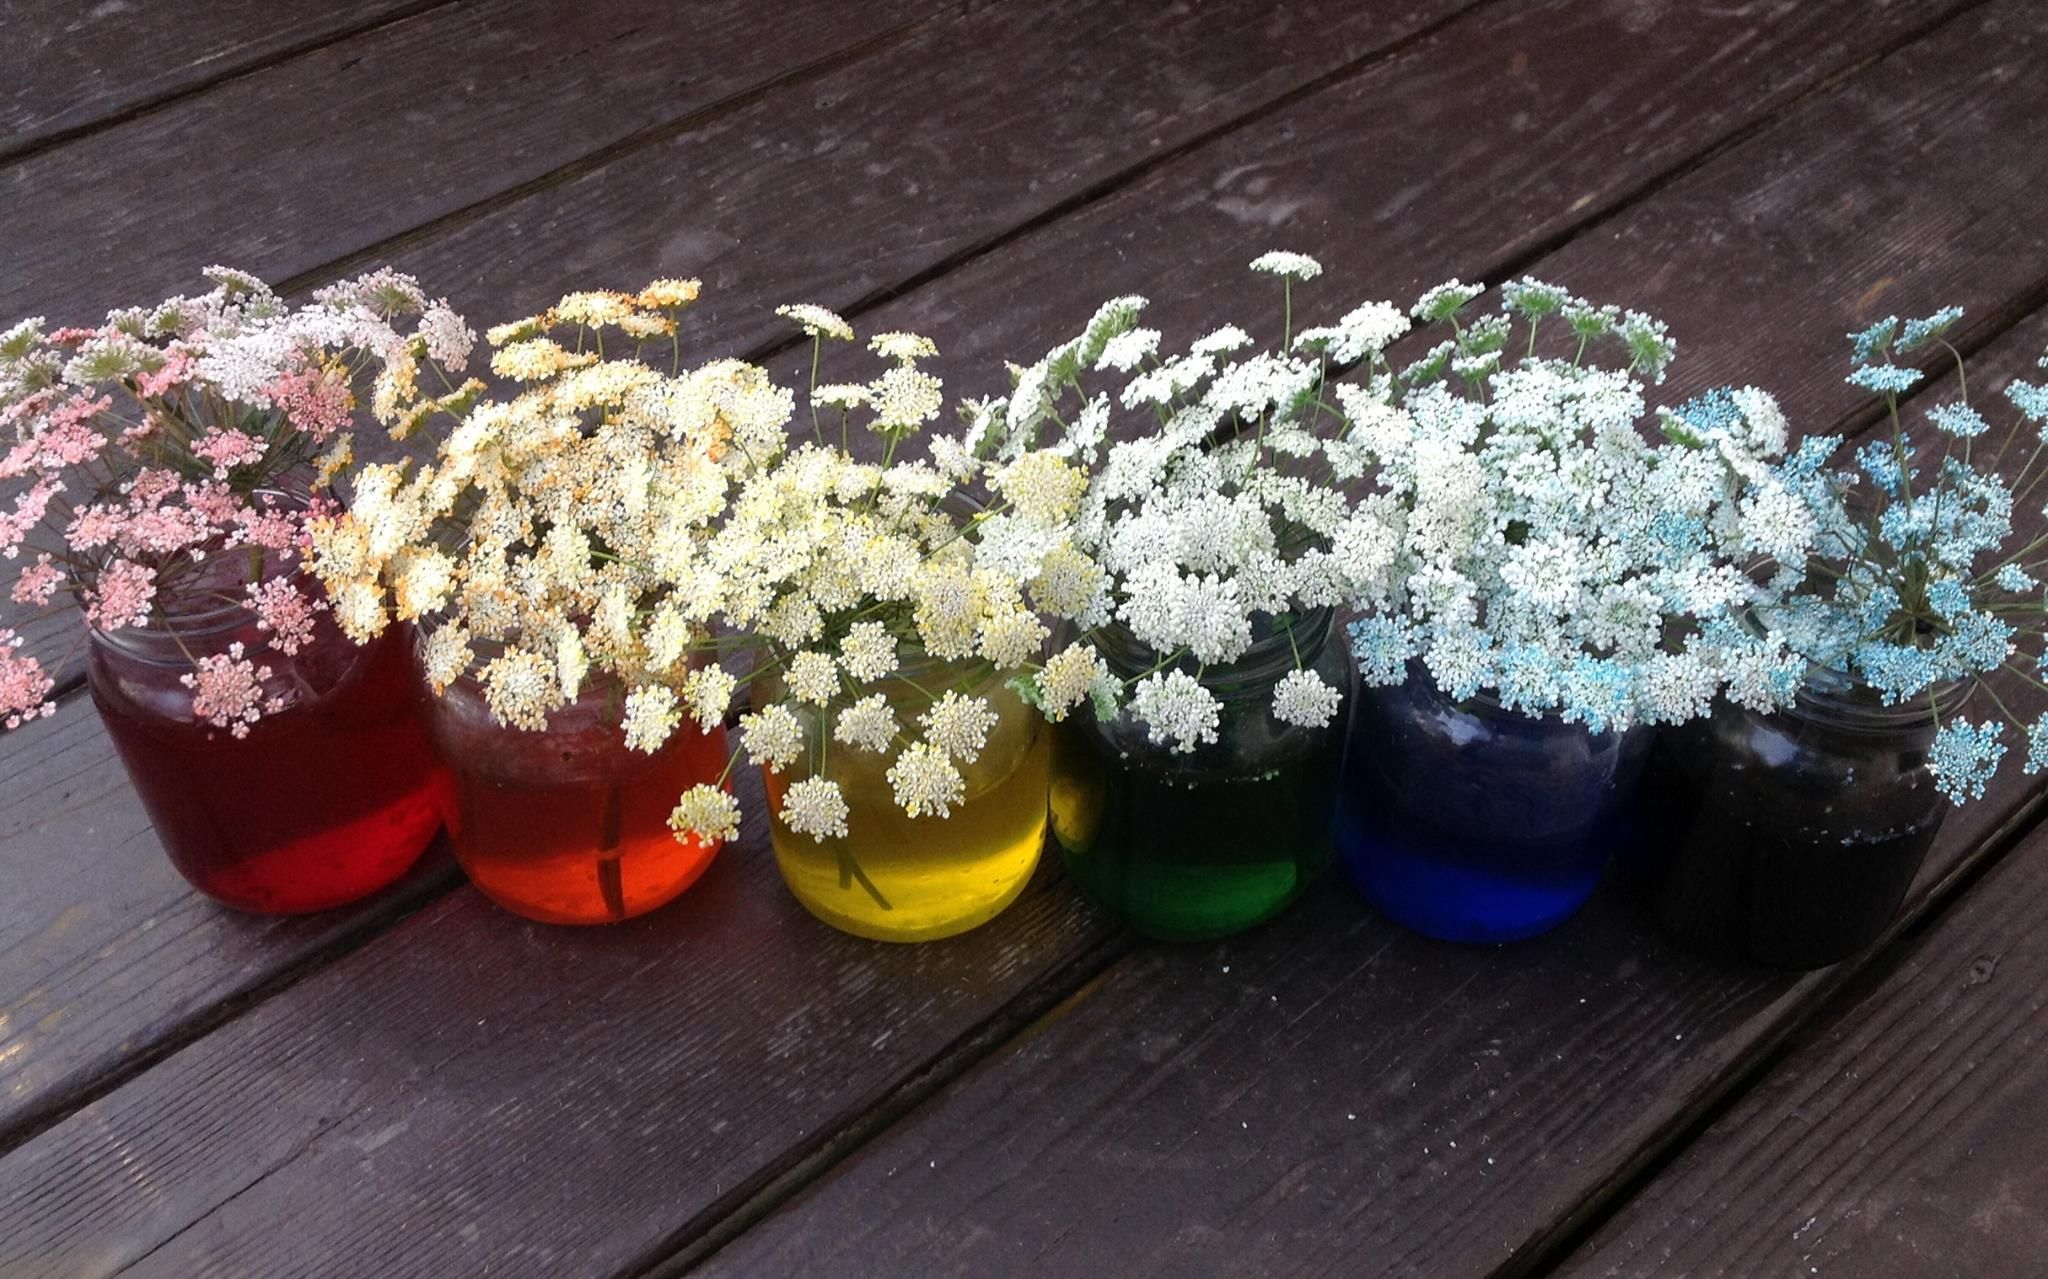 Queen Anne's Lace dyed with food coloring